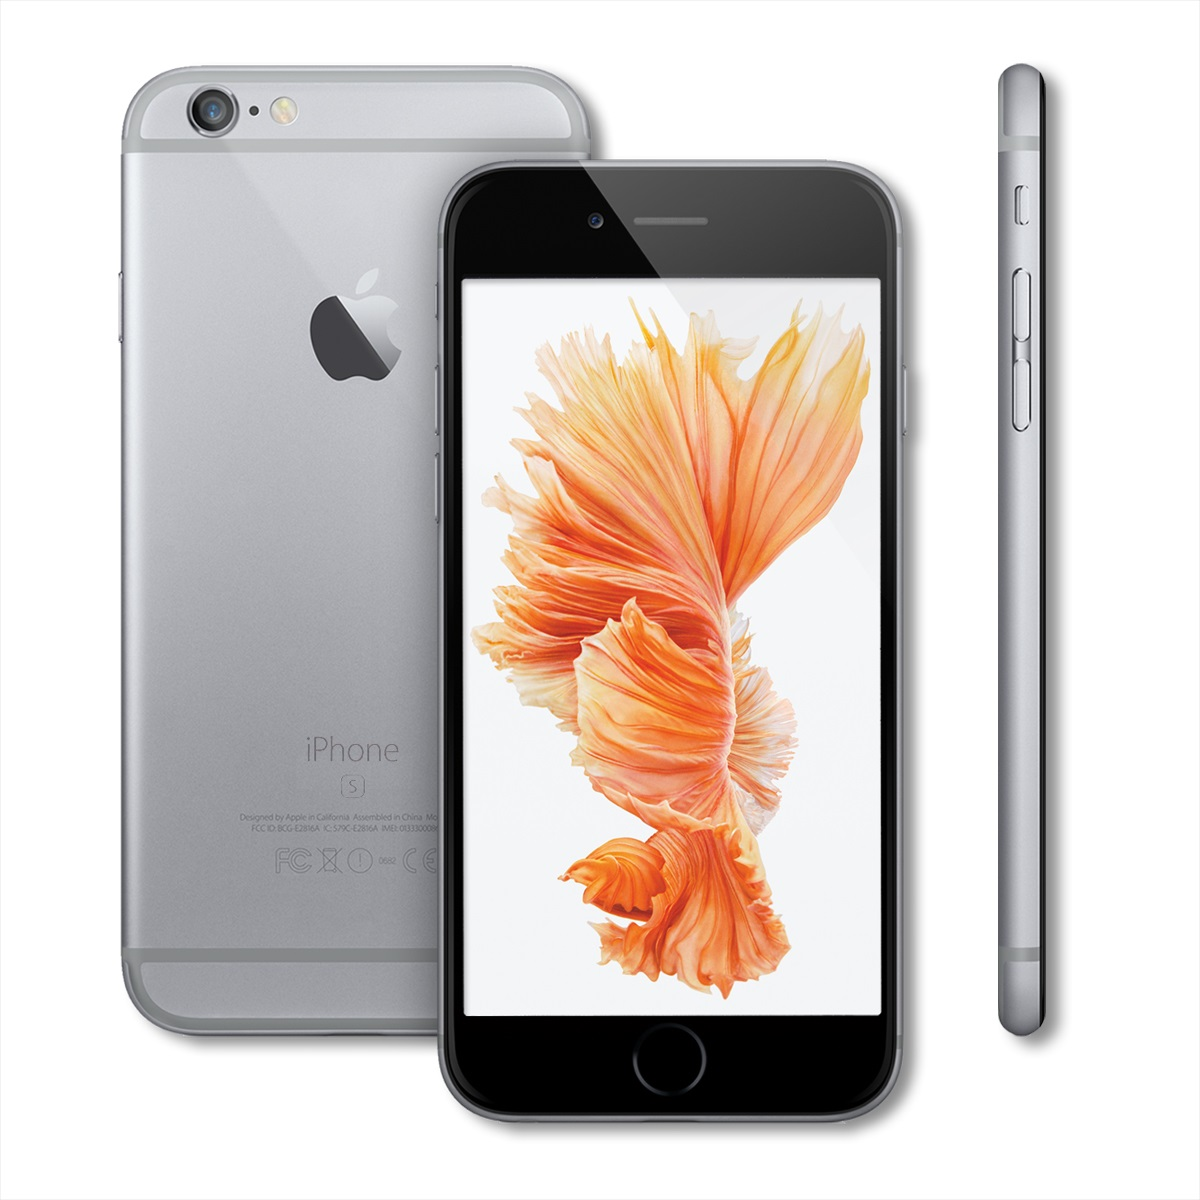 iphone 6s at t apple iphone 6s 32gb smartphone unlocked a1688 sprint t 1133